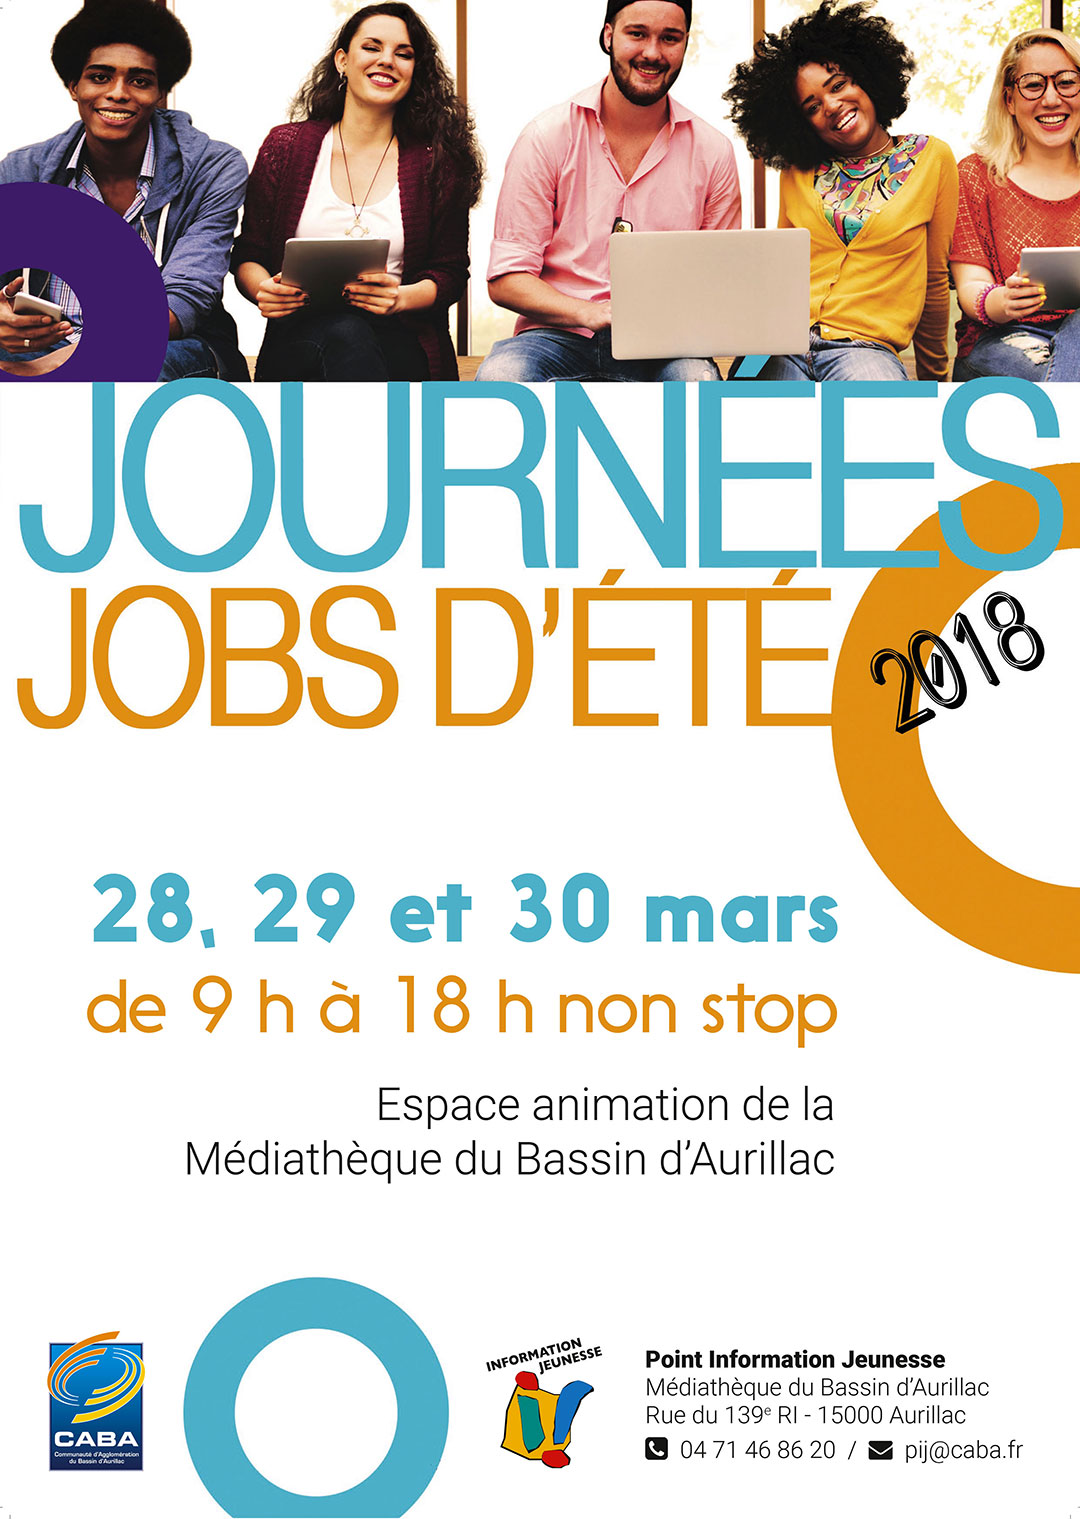 point information    jeunesse journ u00e9es job d u0026 39  u00e9t u00e9    u2022 mairie